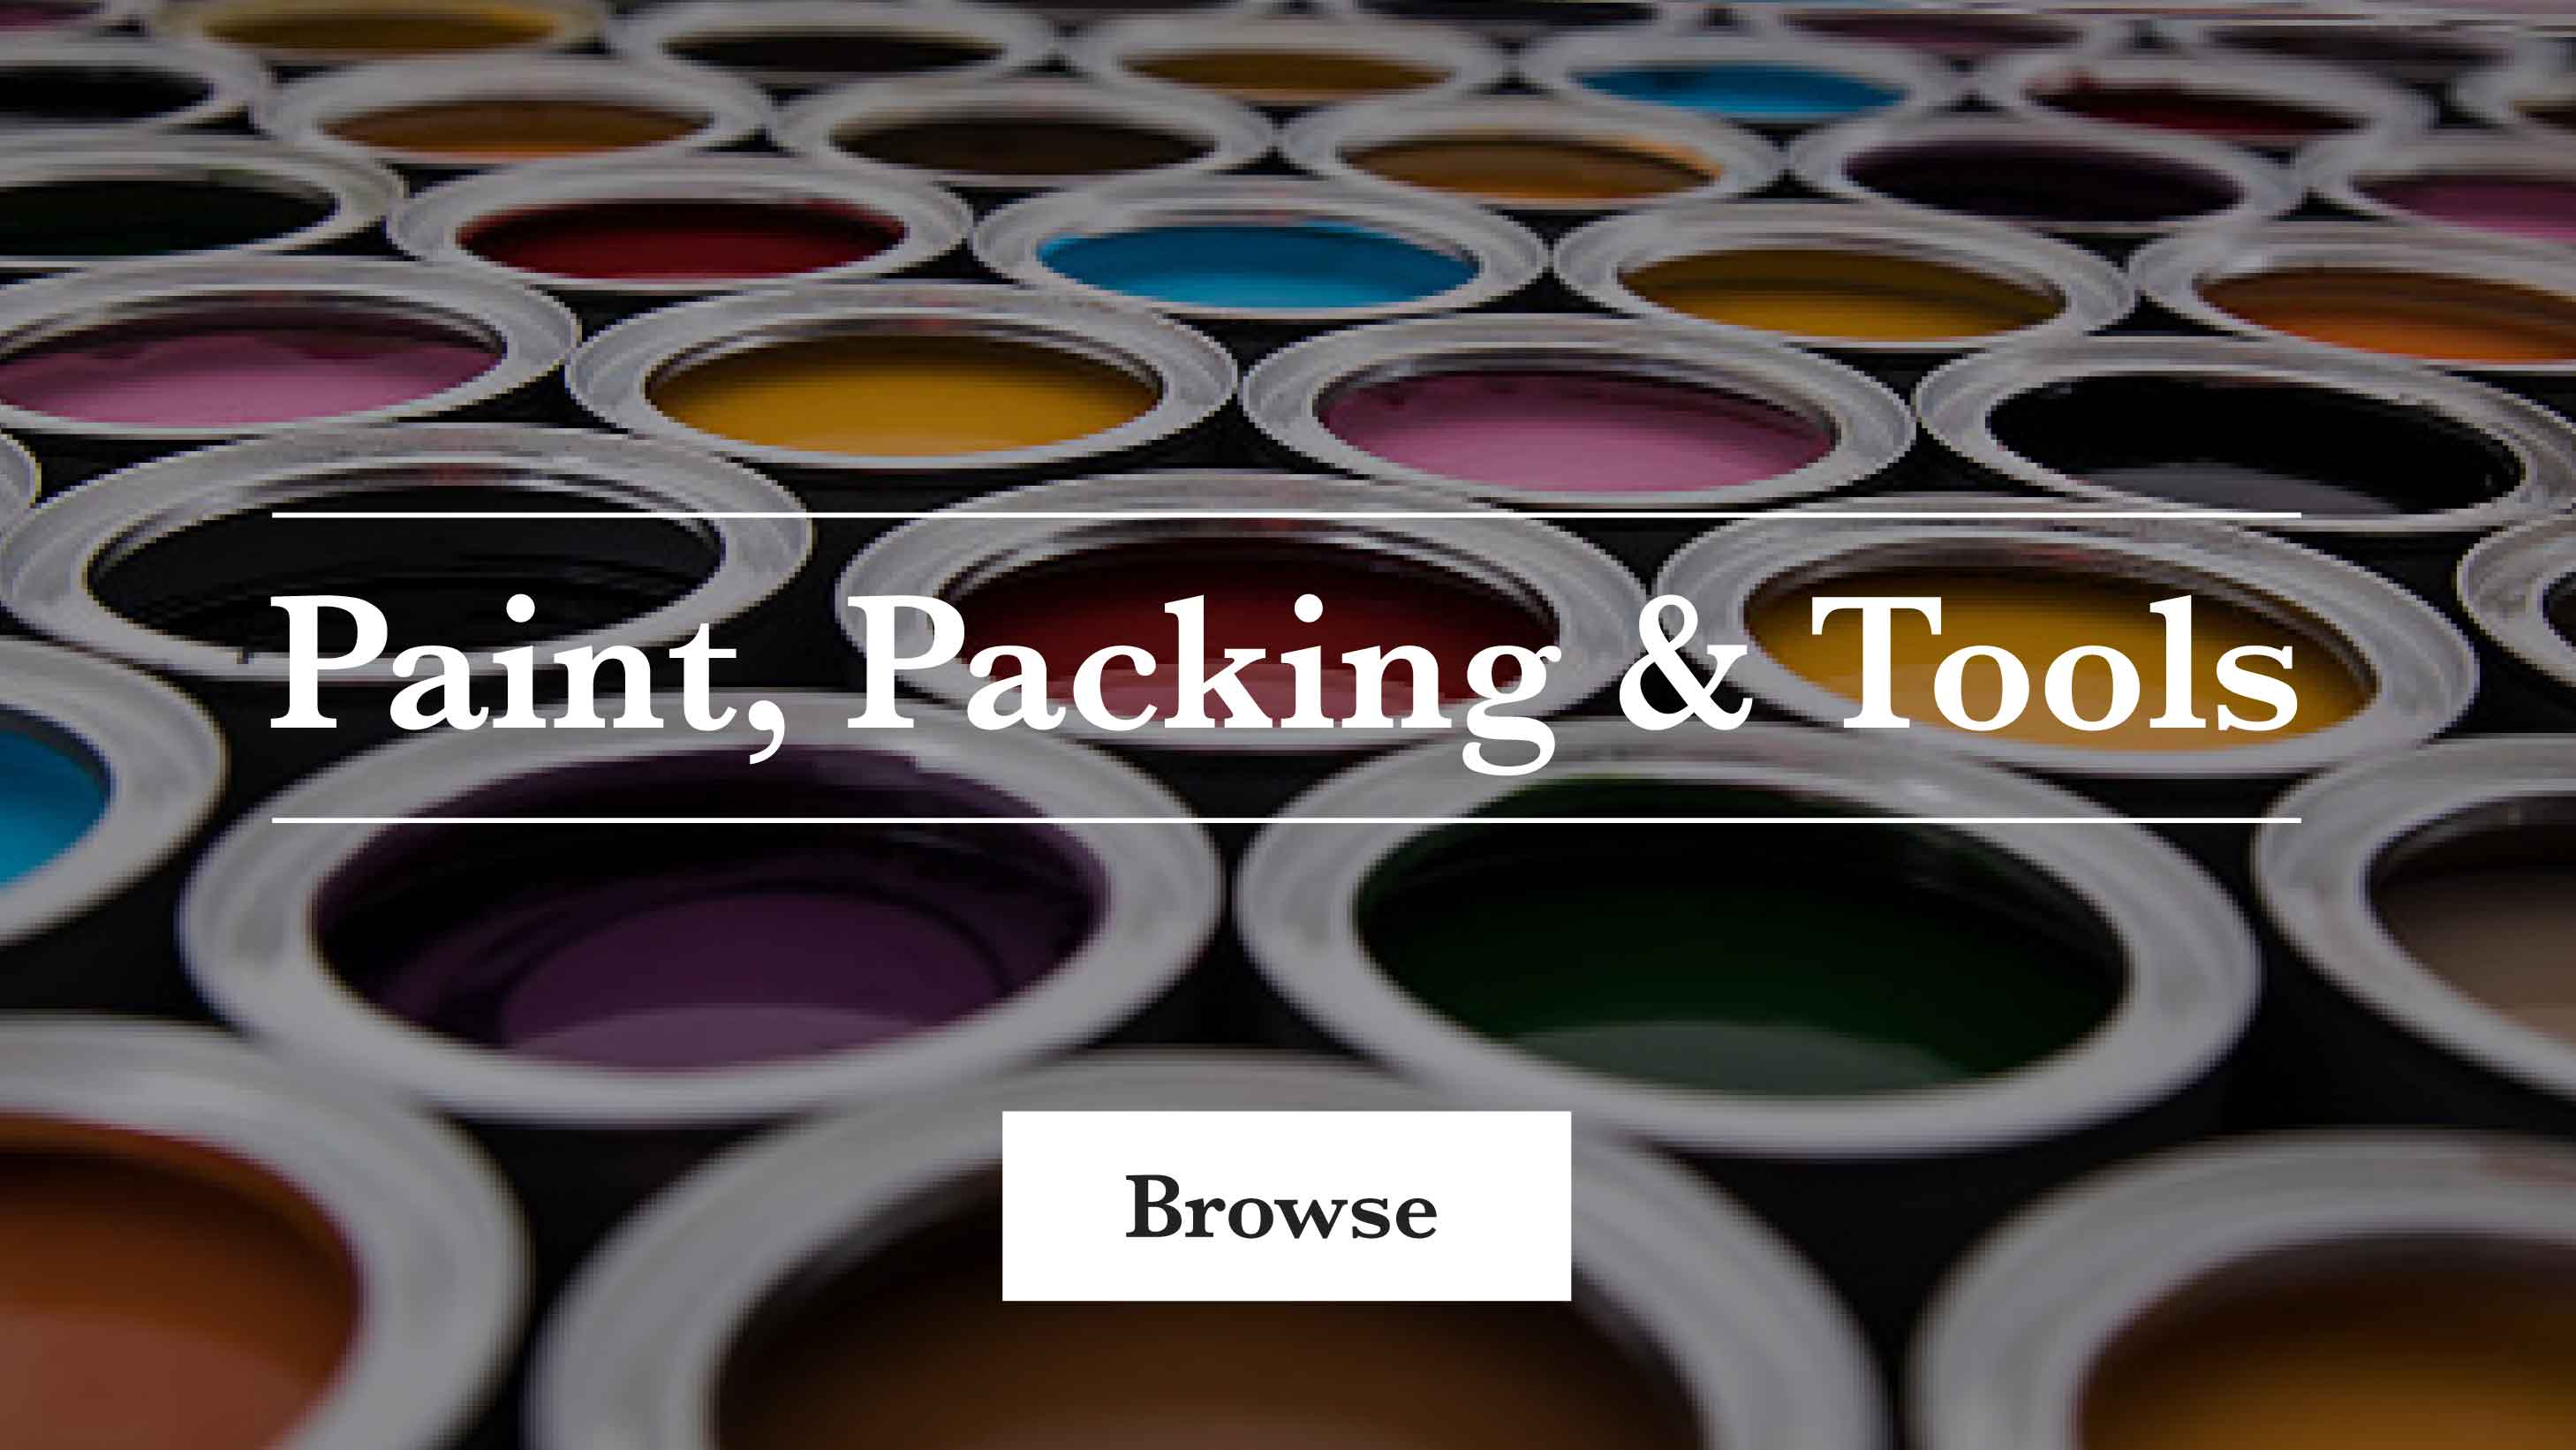 Shop paint, packing & tools